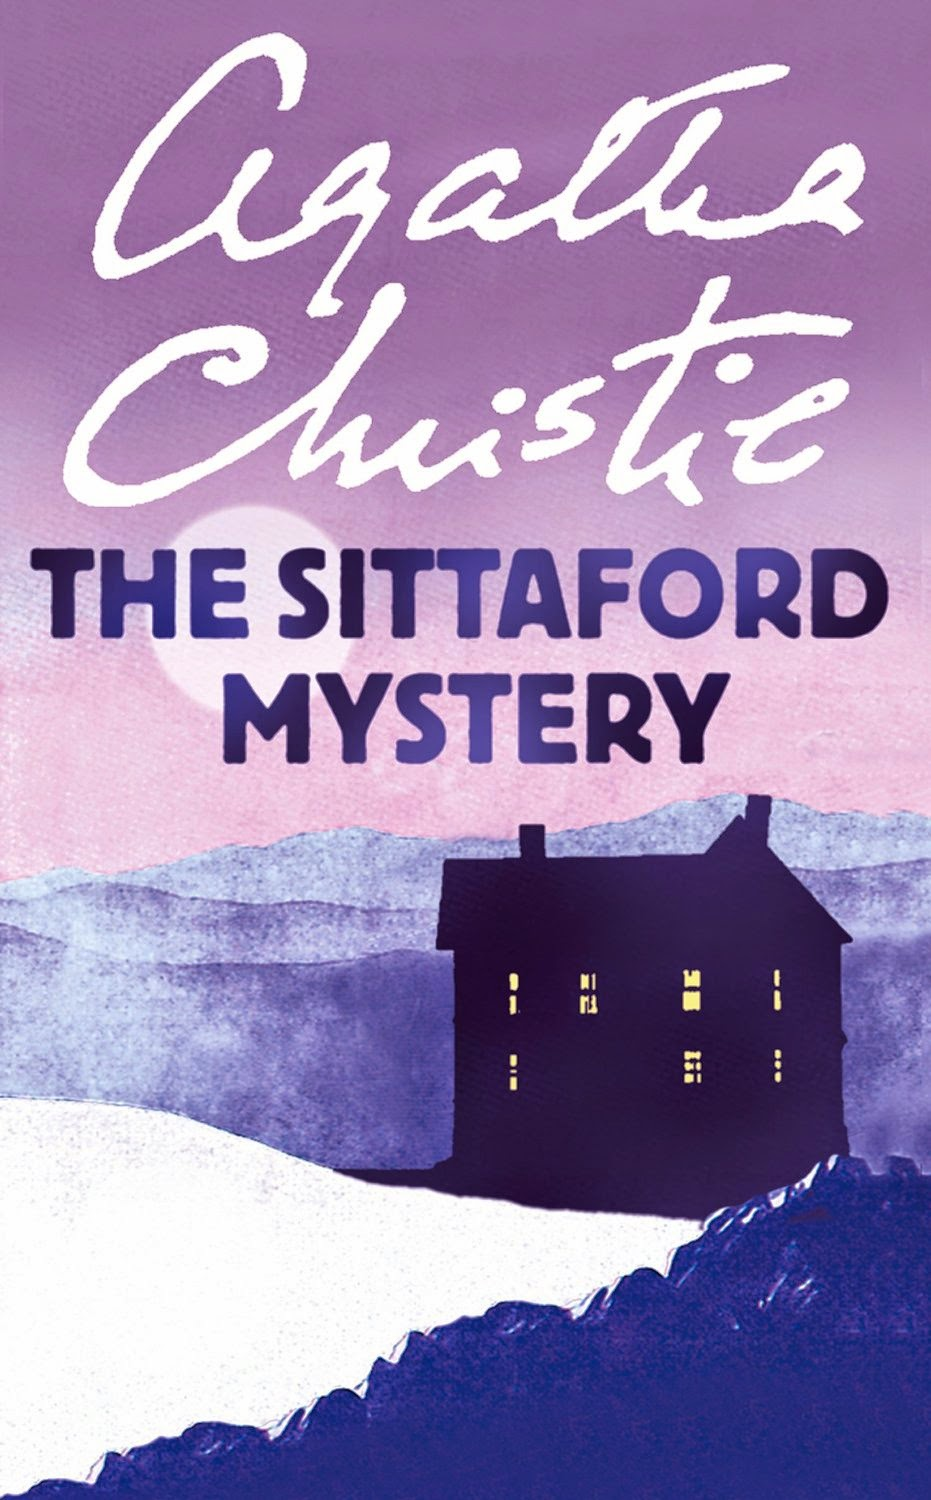 Agatha Christie - The Sittaford Mystery pdf ~ novels society blog